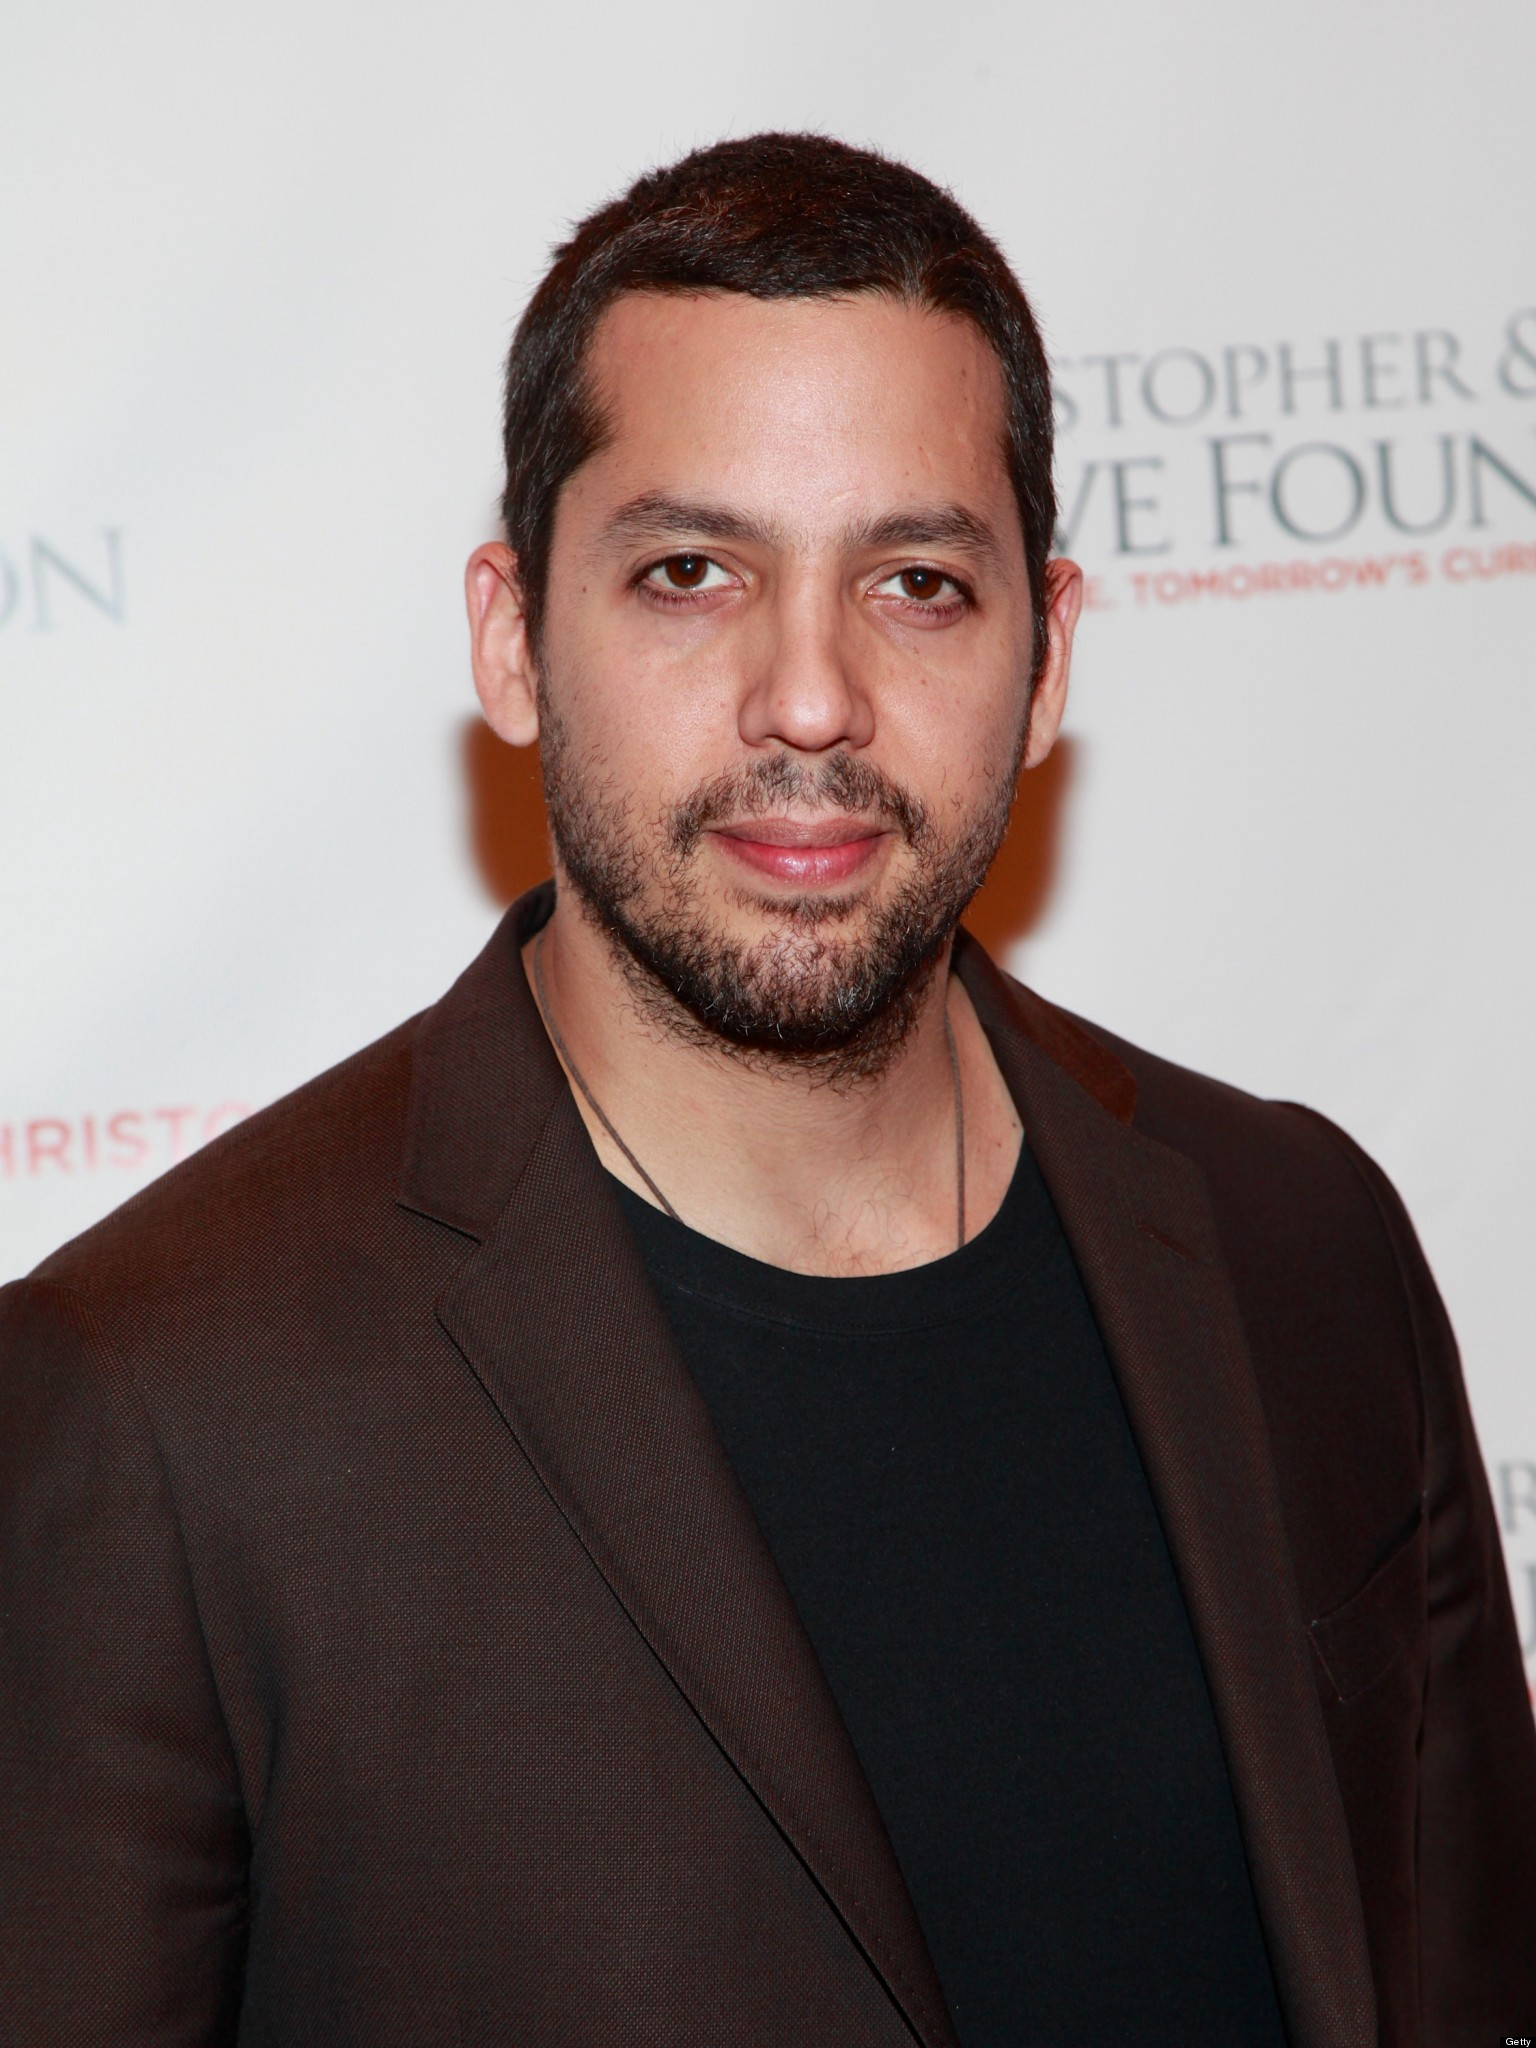 How David Blaine Prepared His TEDMED Talk: One Card at a Time | Lisa Shufro - o-DAVID-BLAINE-facebook